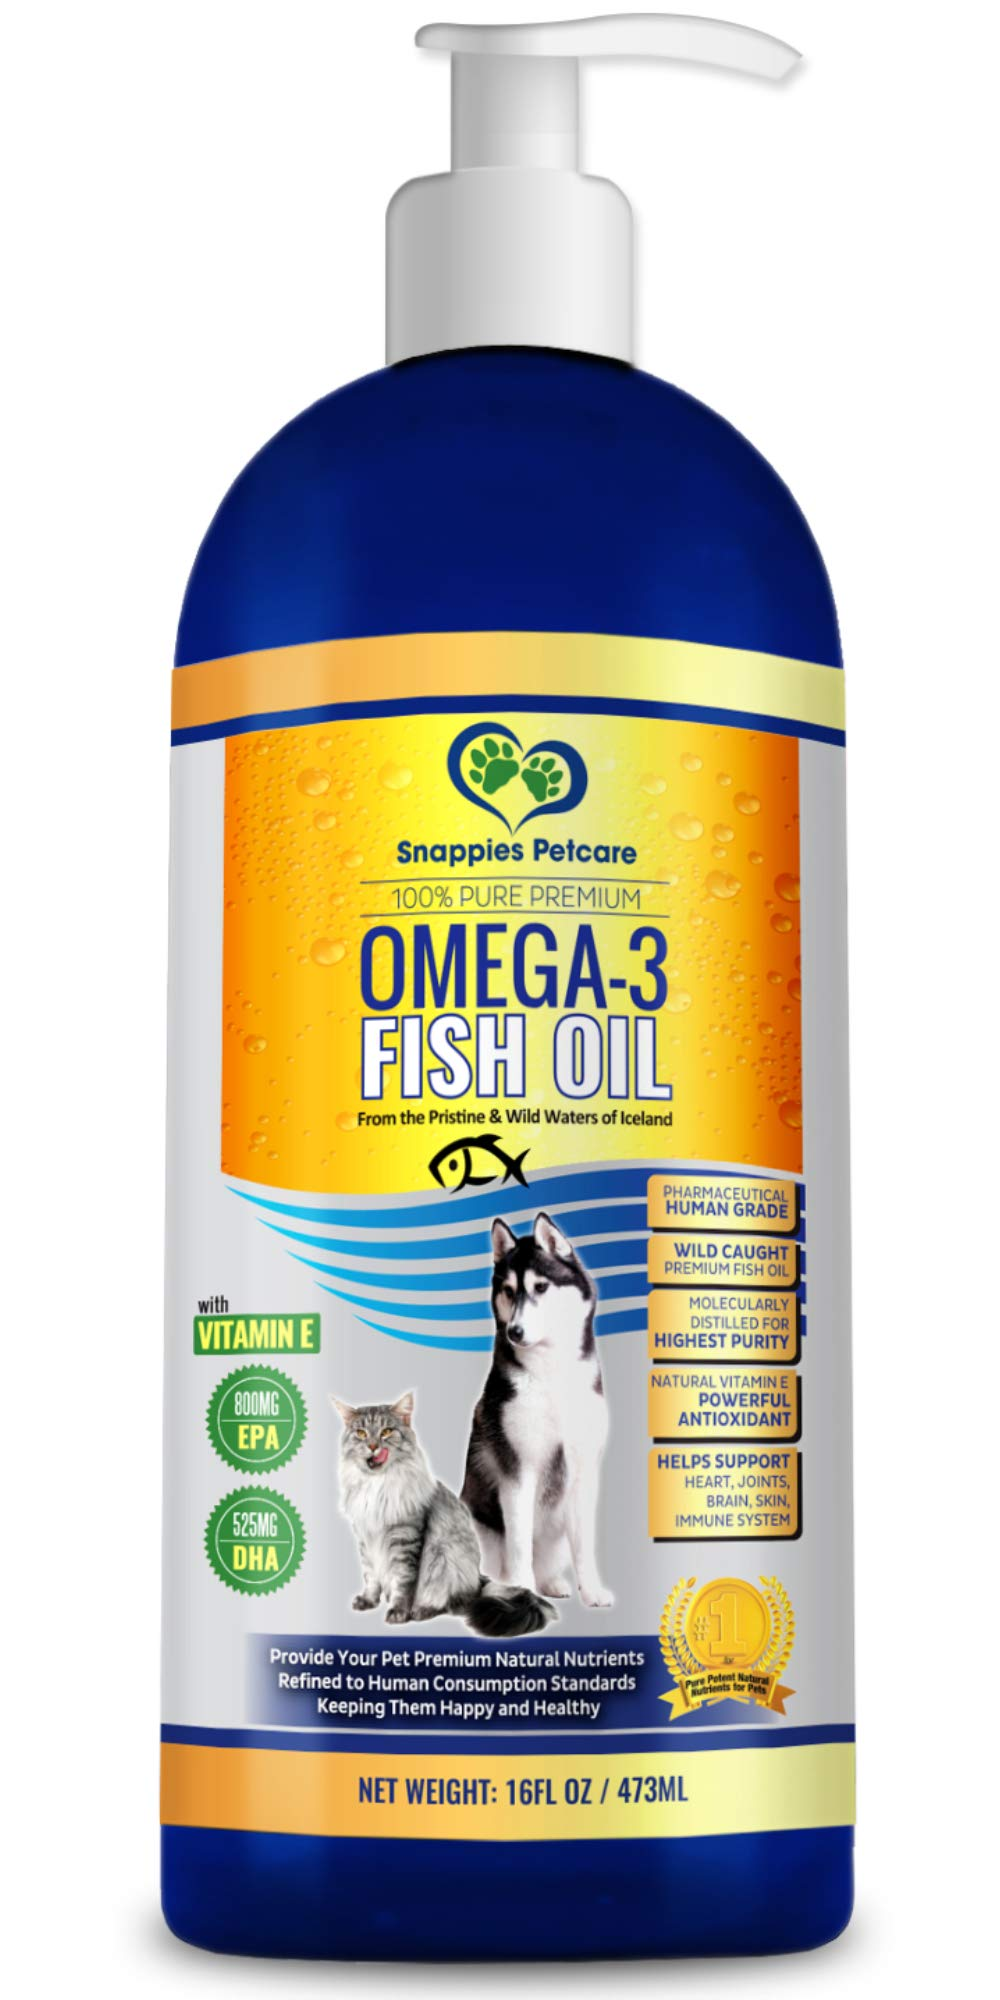 Omega 3 Fish Oil For Dogs and Cats - Wild Icelandic Pure, Odour Free, Cat & Dog Liquid Fish Oil Supplement with Vitamin E & More EPA & DHA Than Salmon Oil for Dogs for Optimal Nutrition / Health by Snappies Petcare